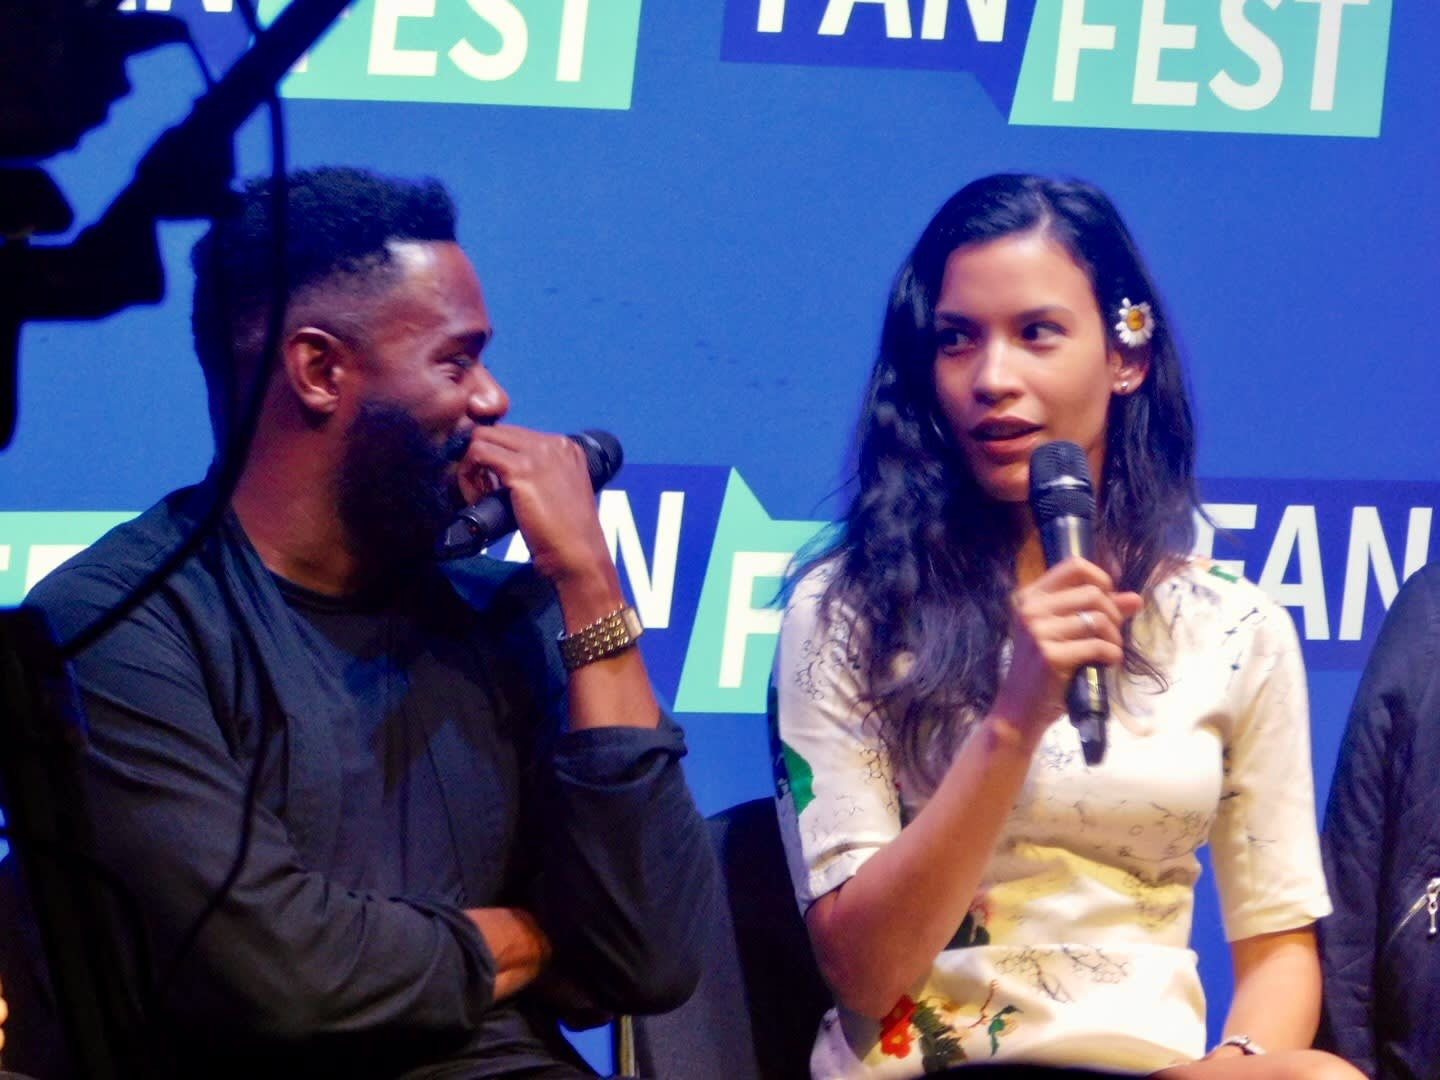 Actors Colman Domingo and Danay Garcia at the Fear The Walking Dead Panel at Fan Fest Nashville Photo credit: Tracey Phillipps